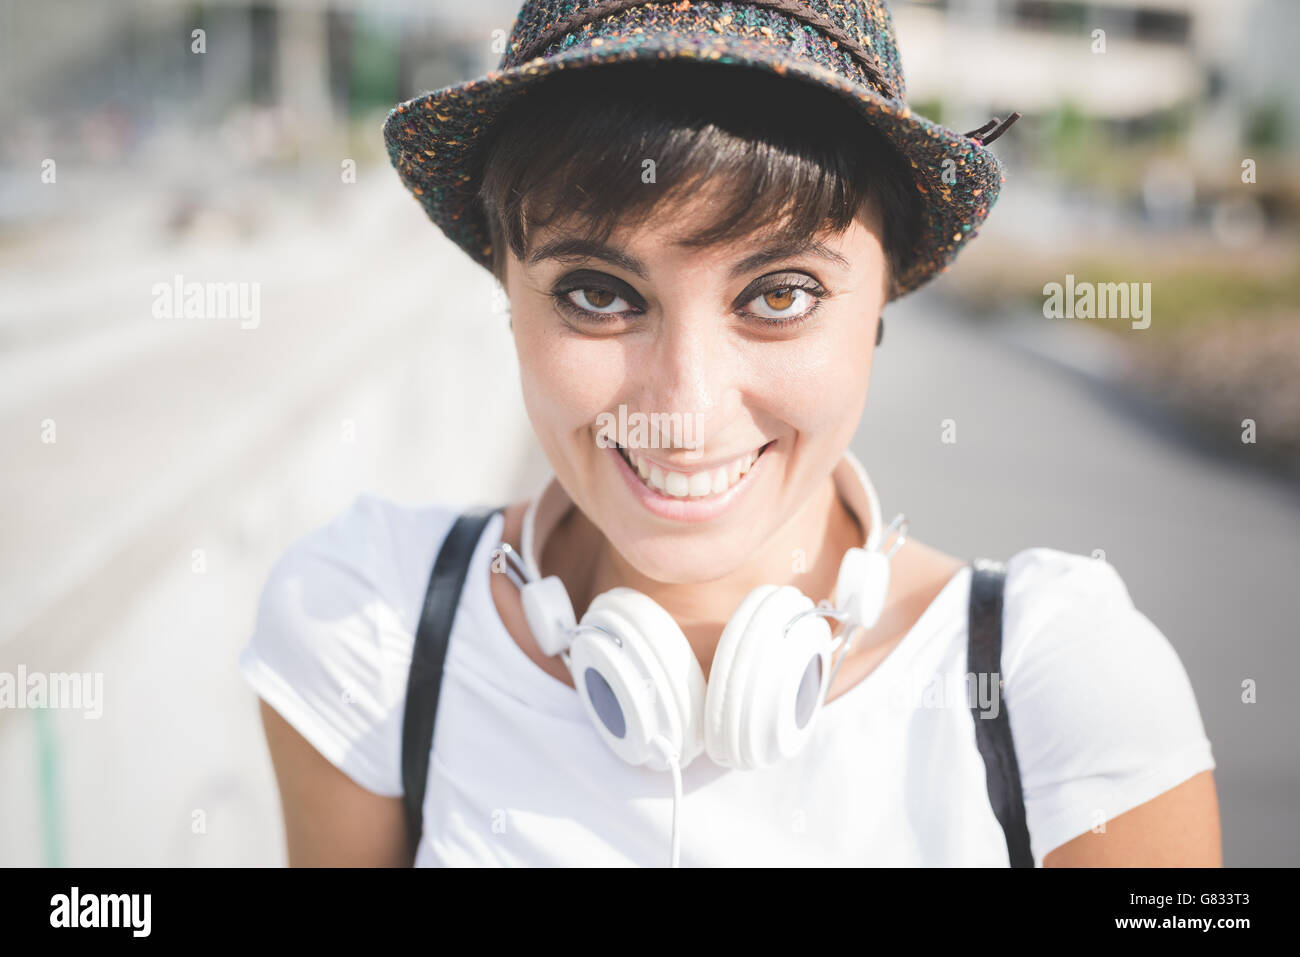 Half length of young beautiful caucasian woman wearing hat, with headphones around her neck, looking in camera smiling - Stock Image